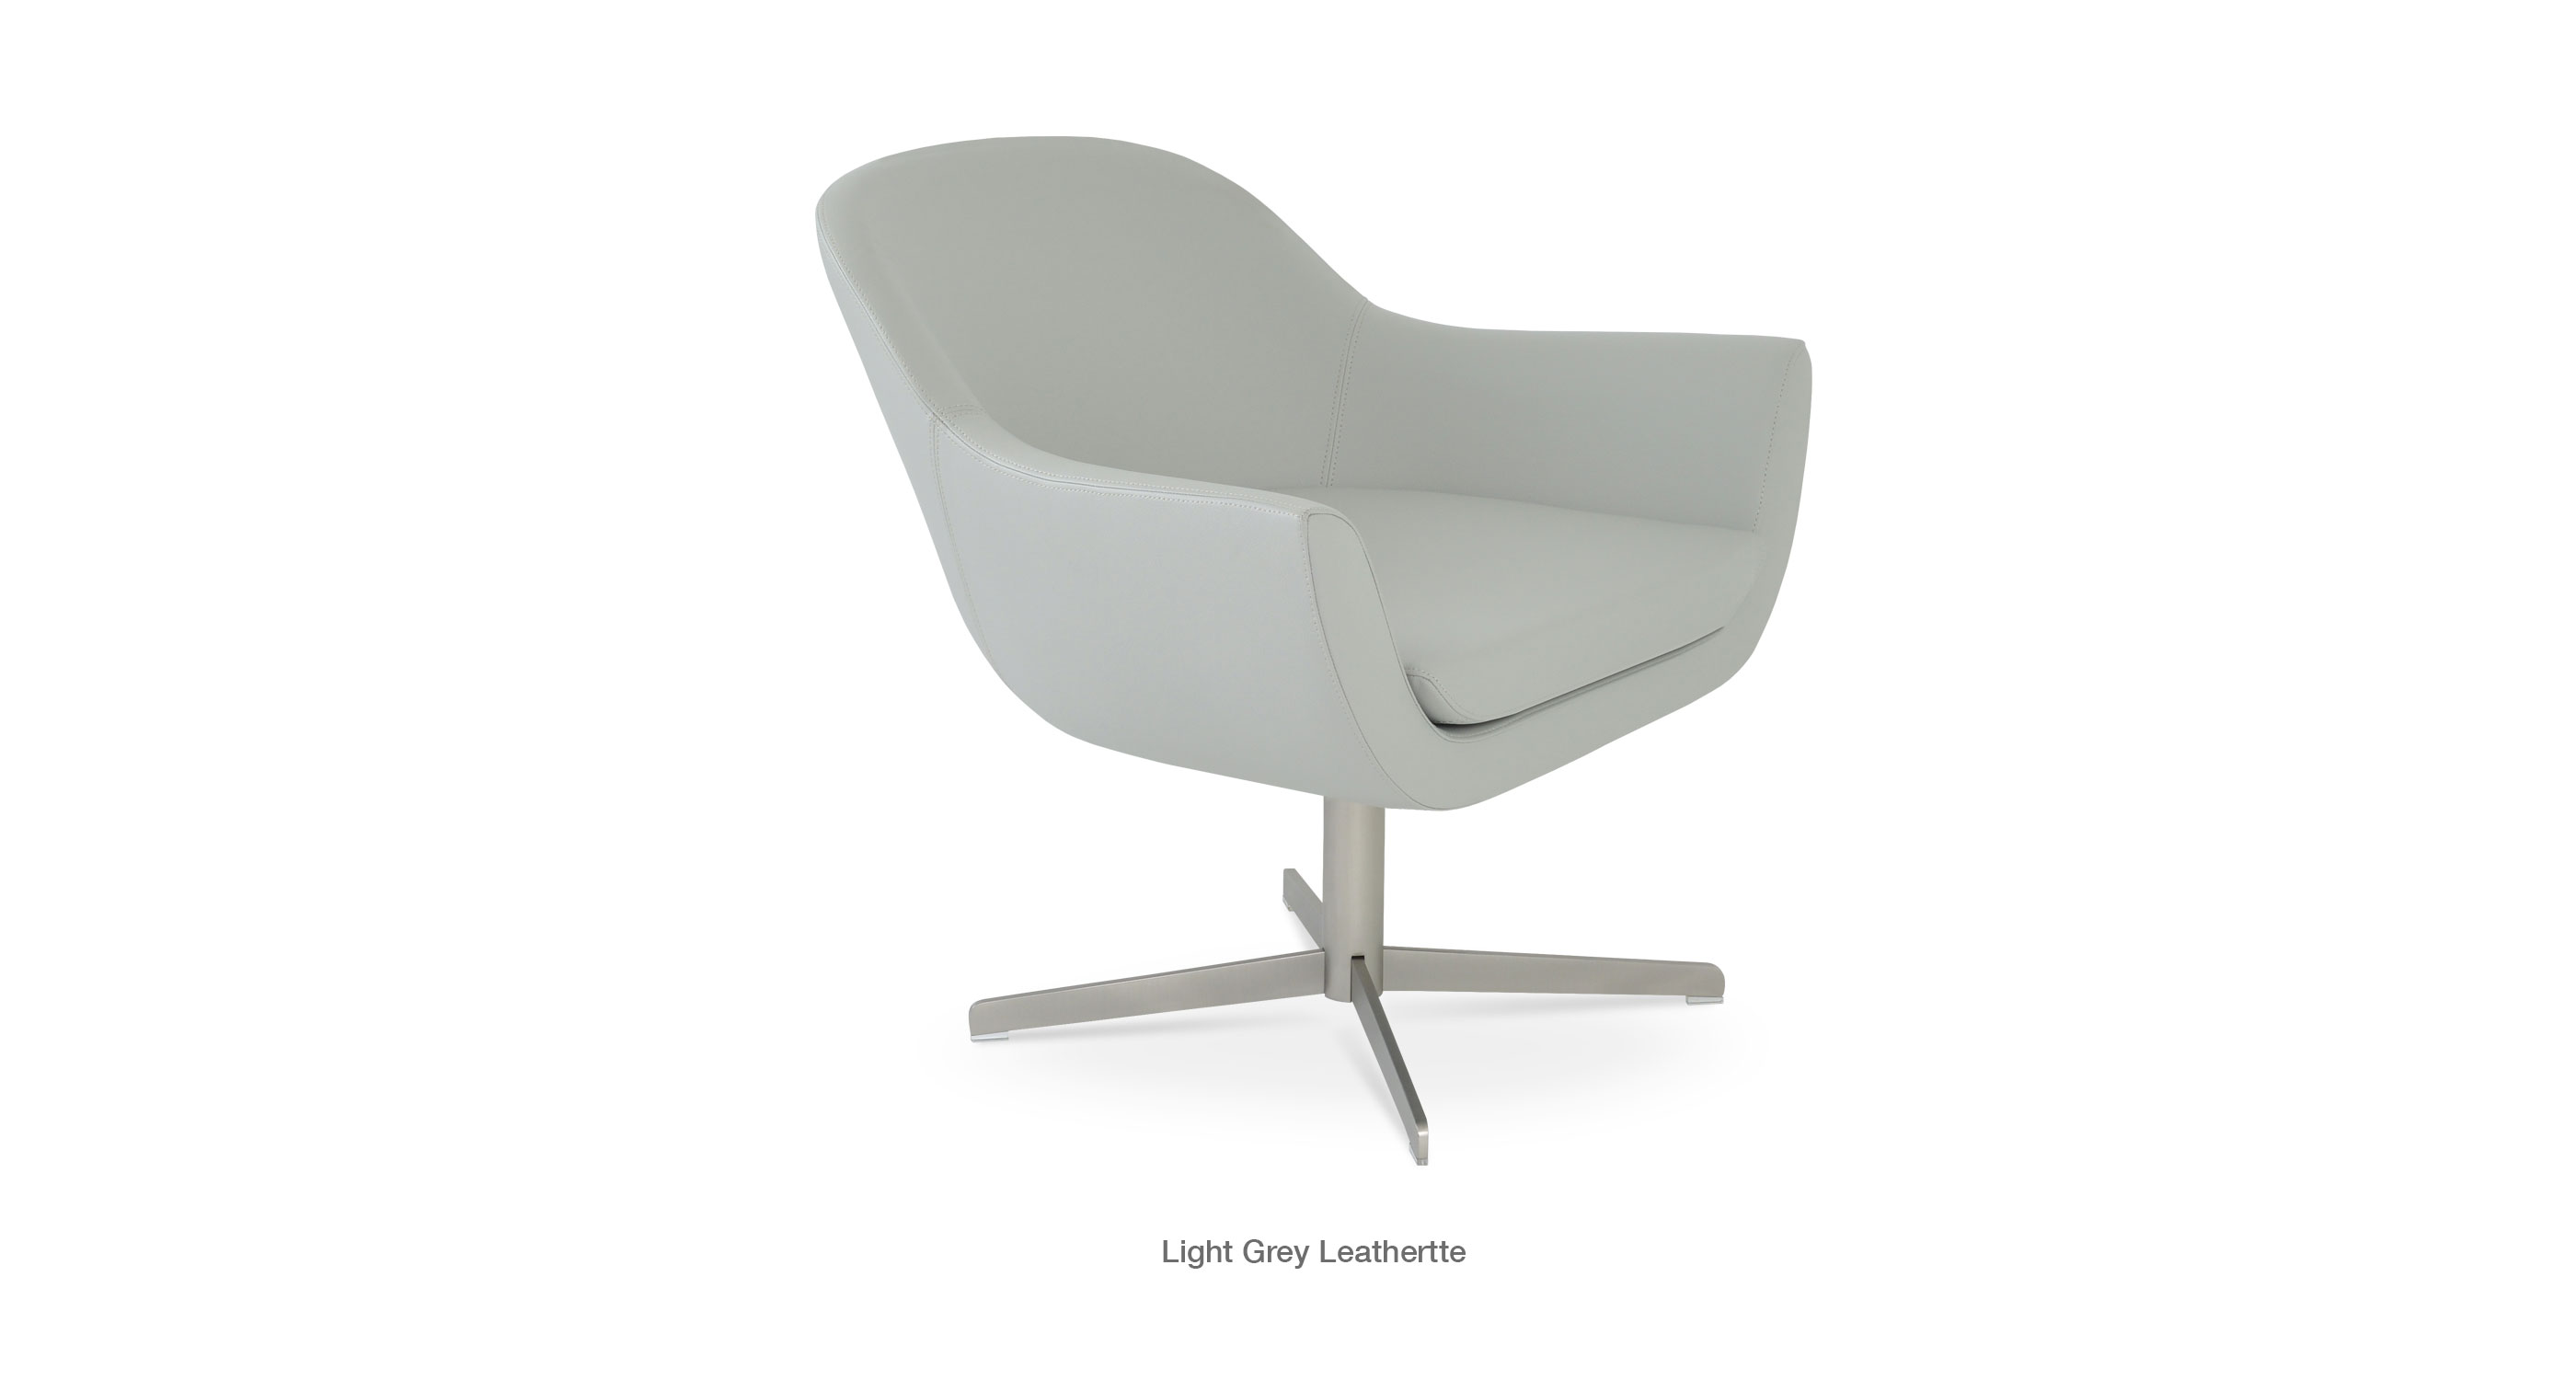 Madison 4 Star Light Grey Leatherette